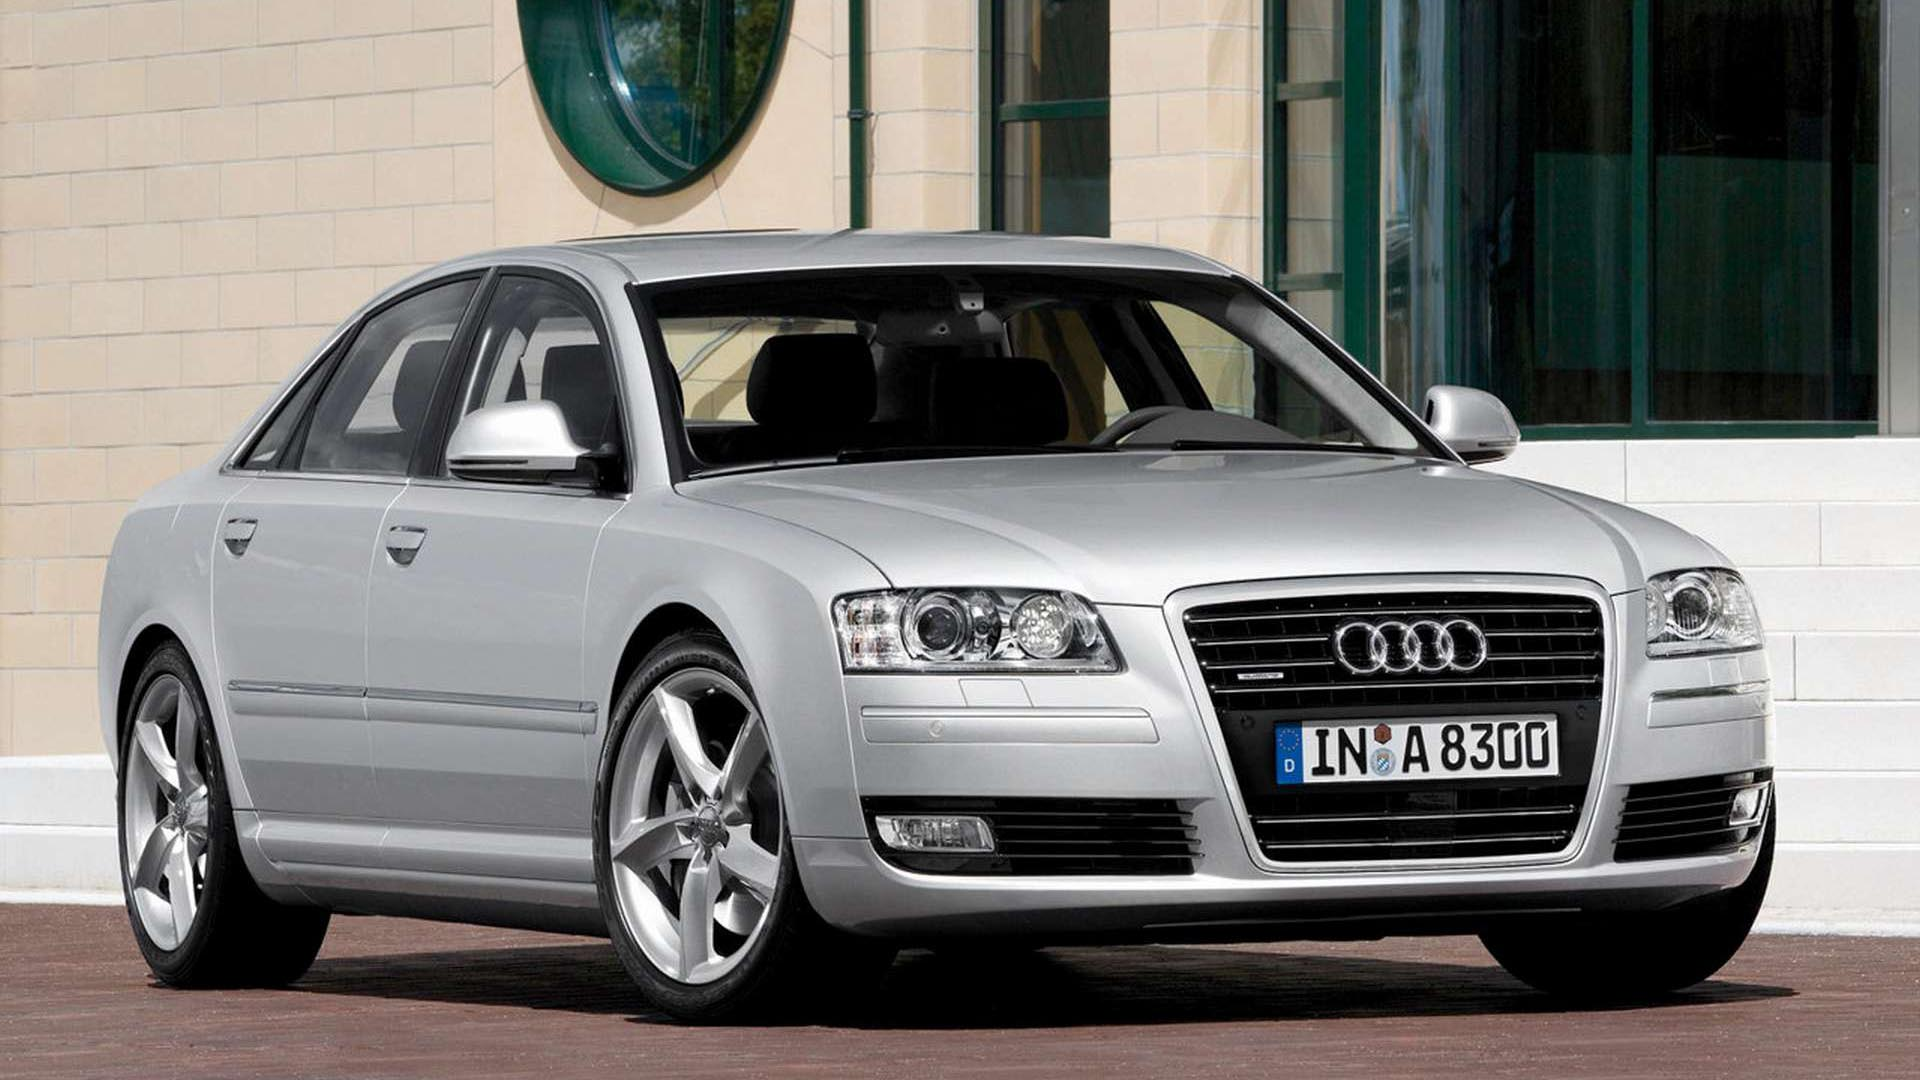 5 Of The Best Used European Luxury Cars To Buy Under $10,000